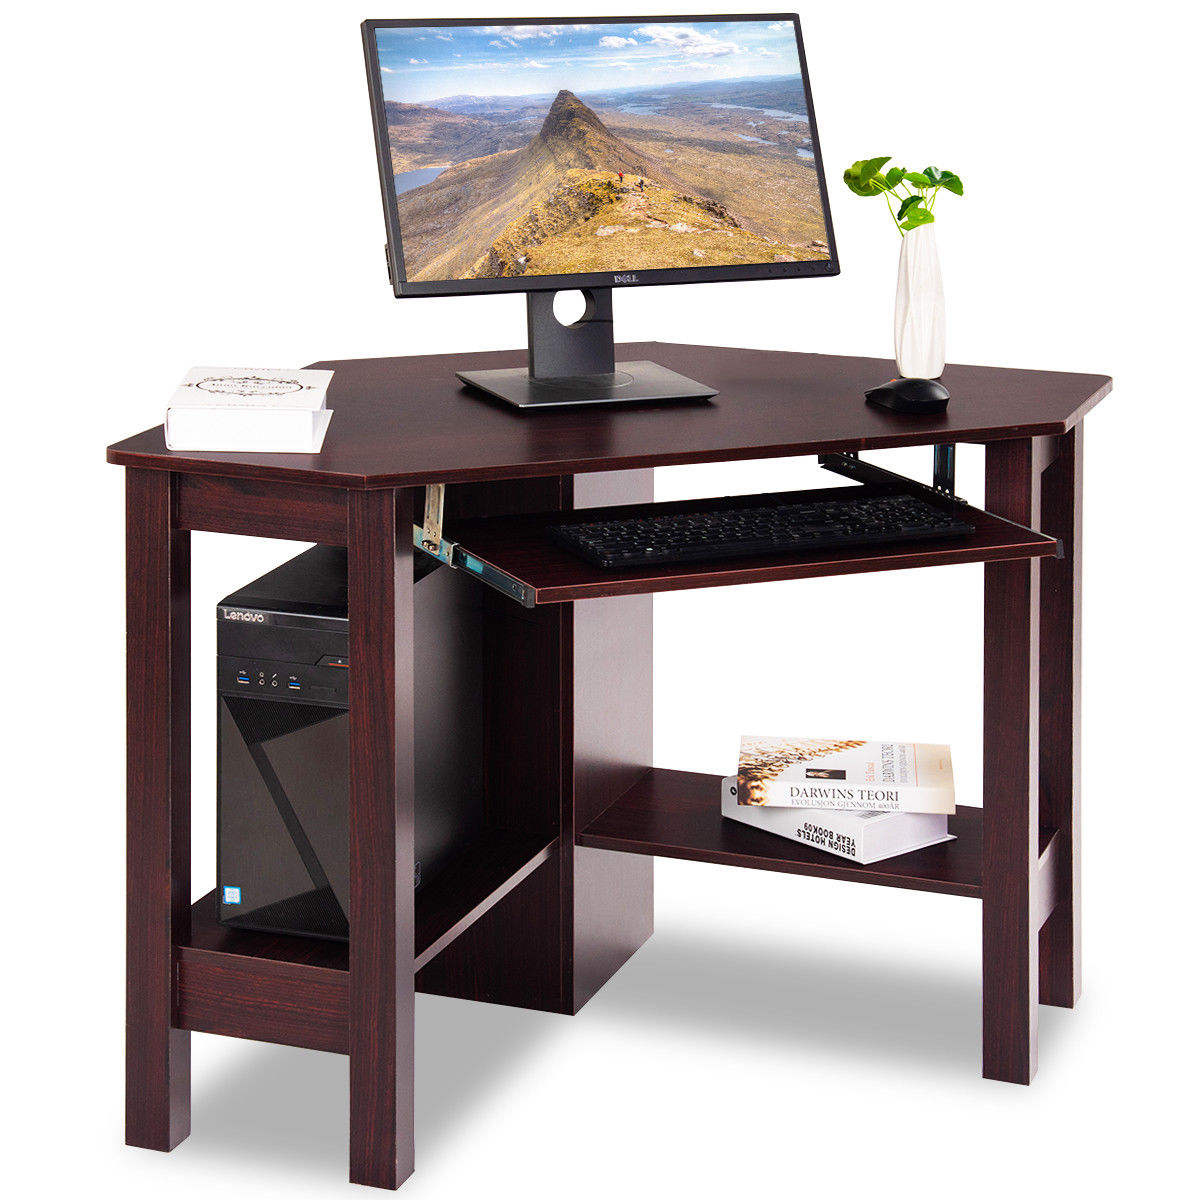 costway wooden corner desk with drawer computer pc table study office room brown. Black Bedroom Furniture Sets. Home Design Ideas